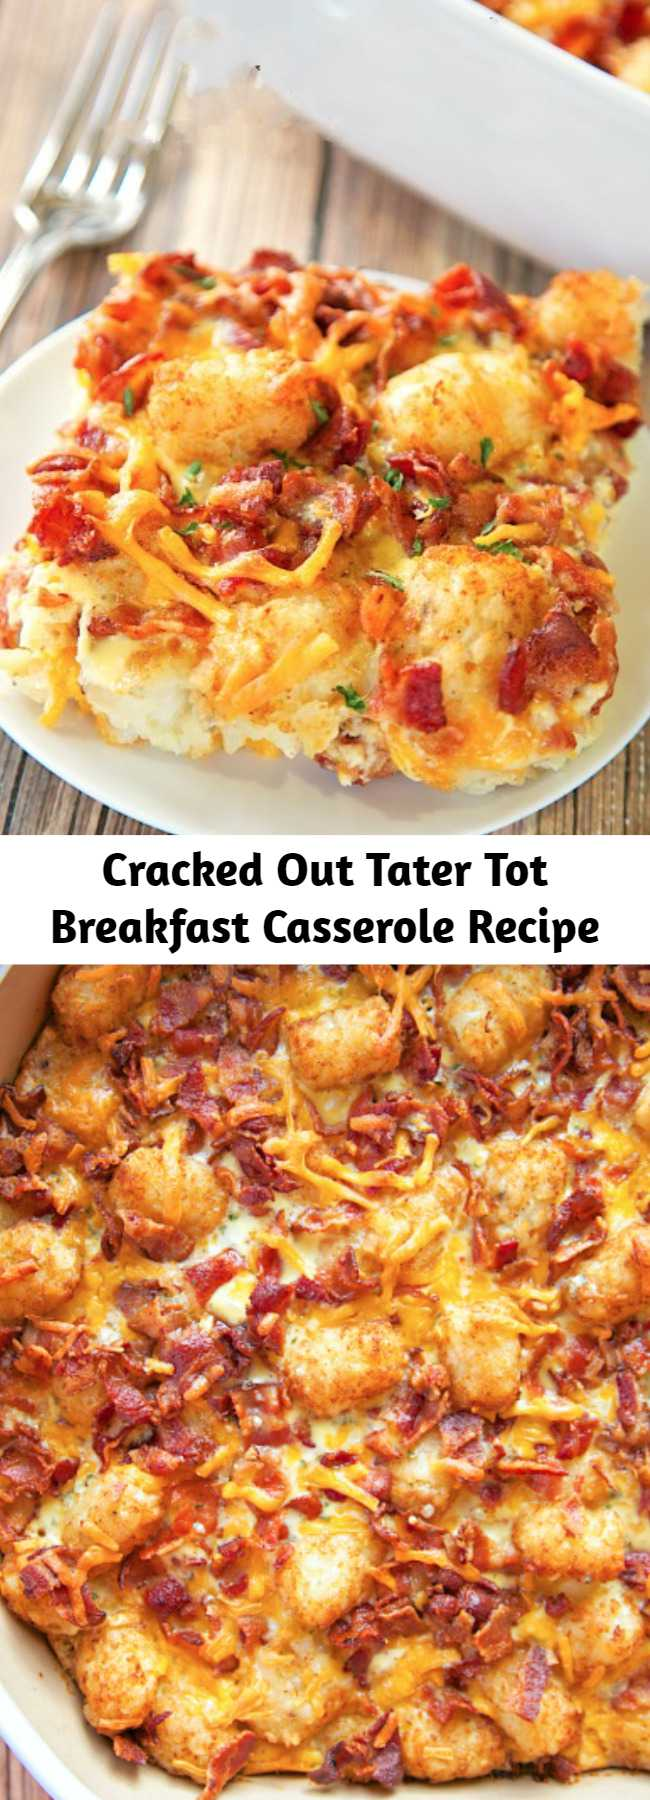 Cracked Out Tater Tot Breakfast Casserole Recipe - Great make-ahead recipe! Only 6 ingredients!! Bacon, cheddar cheese, tater tots, eggs, milk, Ranch mix. Can refrigerate or freeze for later. Great for breakfast. lunch or dinner. Everyone loves this easy breakfast casserole!! #breakfast #casserole #tatertots #bacon #freezermeal